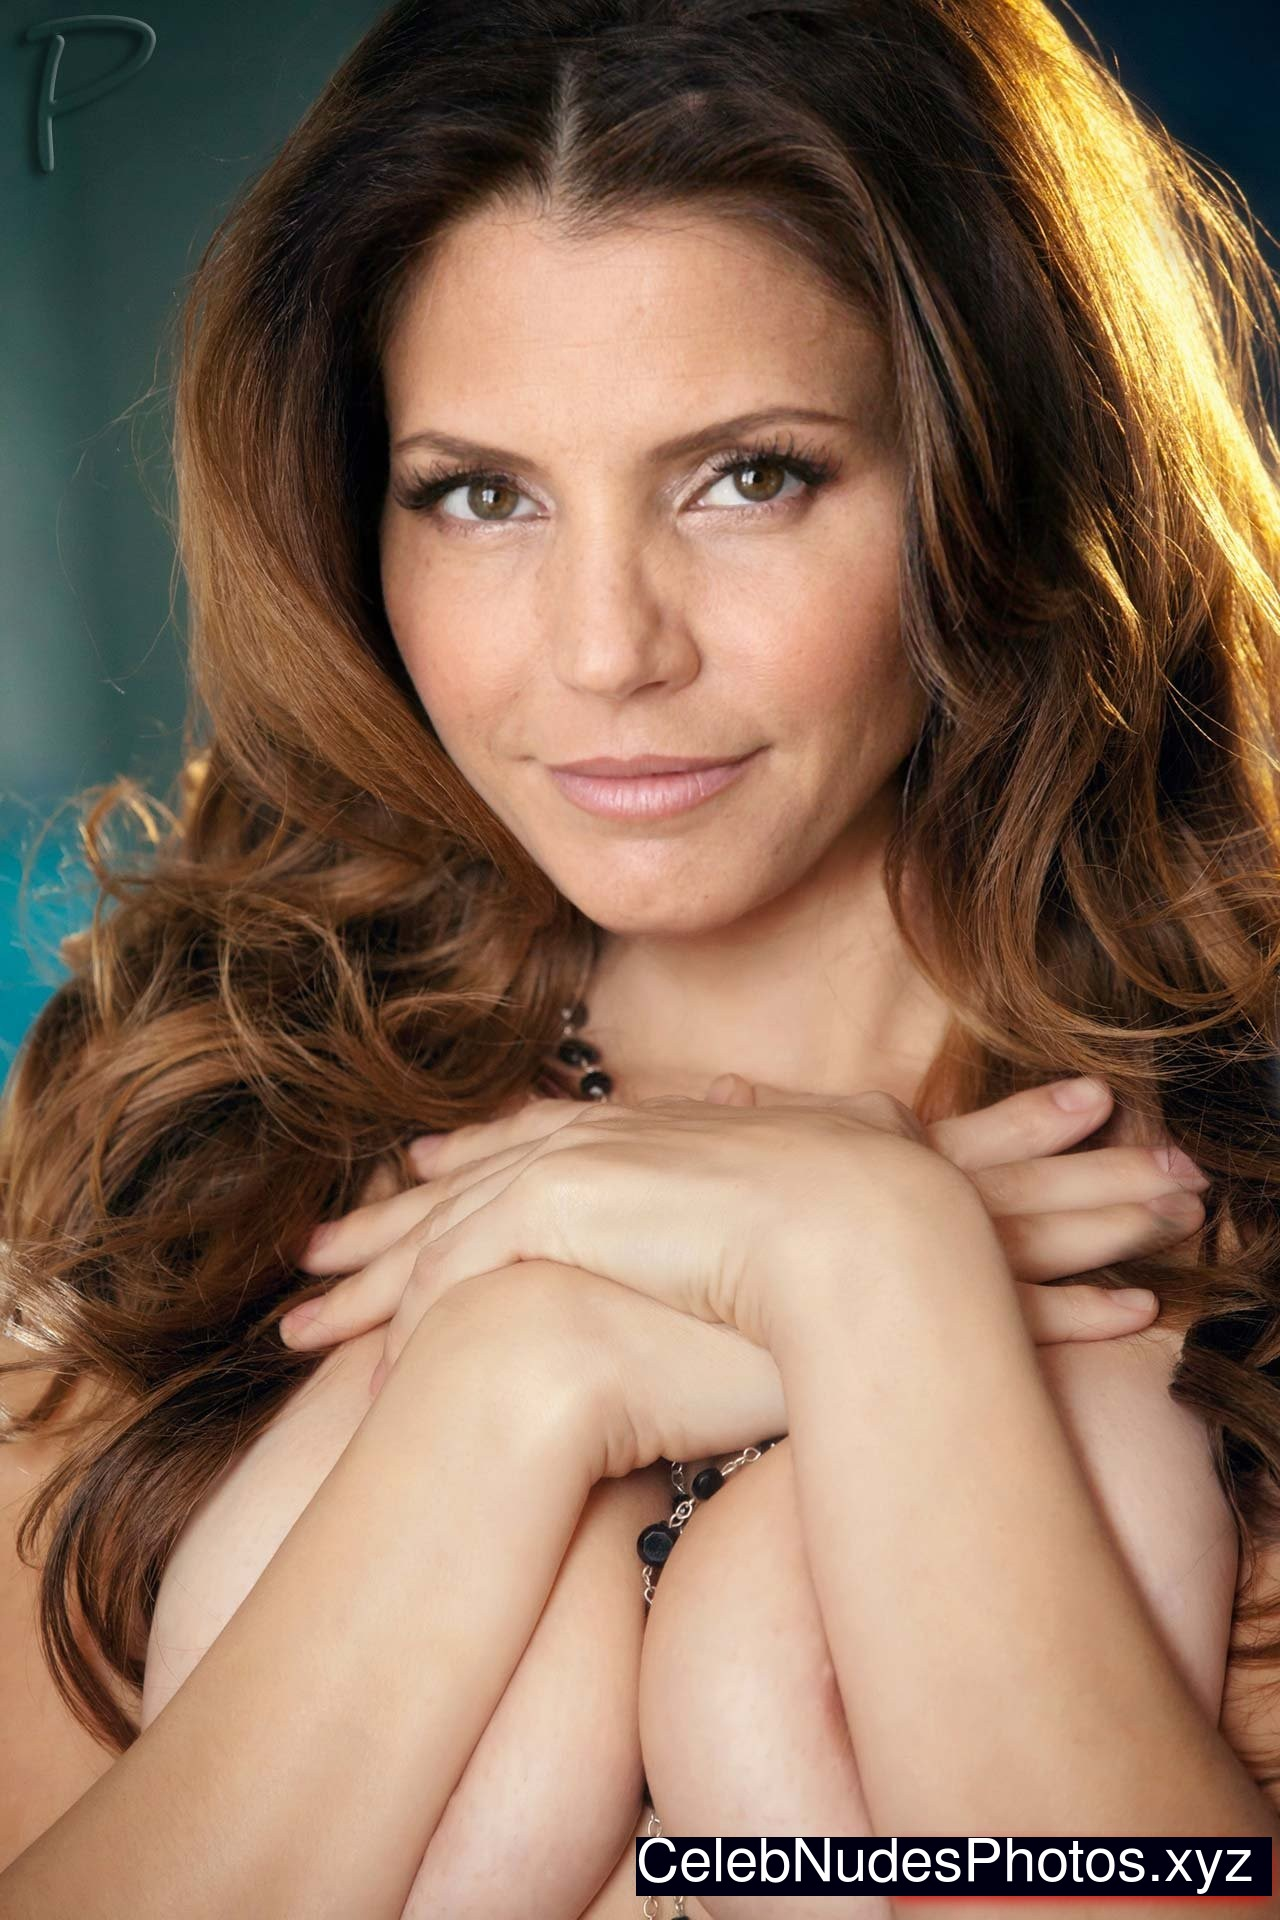 Like Charisma carpenter fake nudes help you?